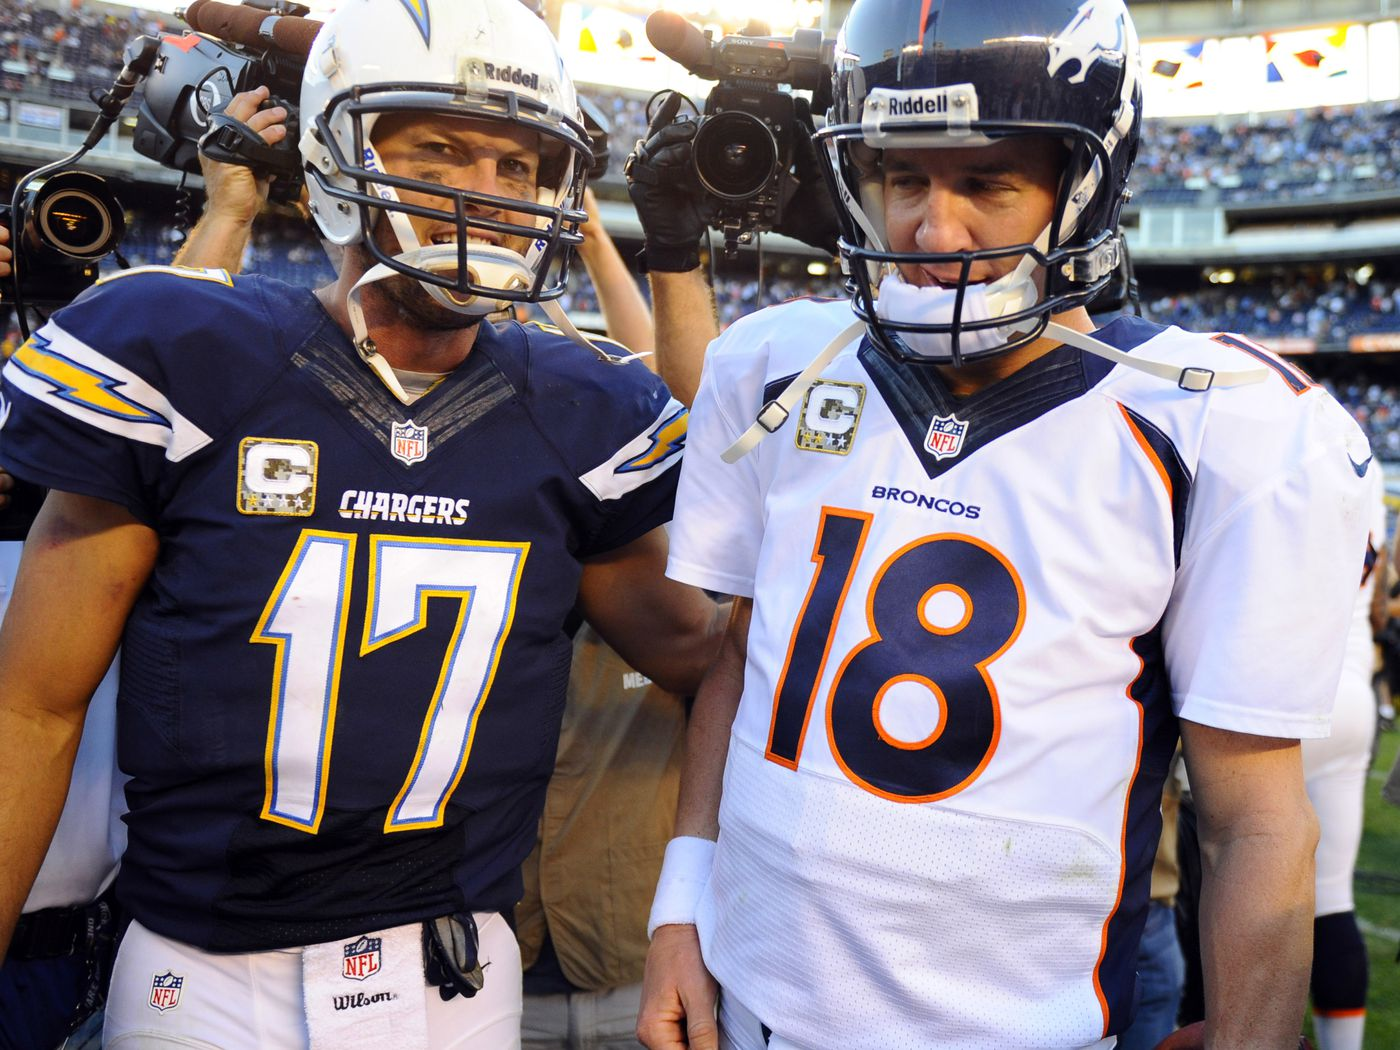 Broncos chargers playoff betting line biased notation binary options